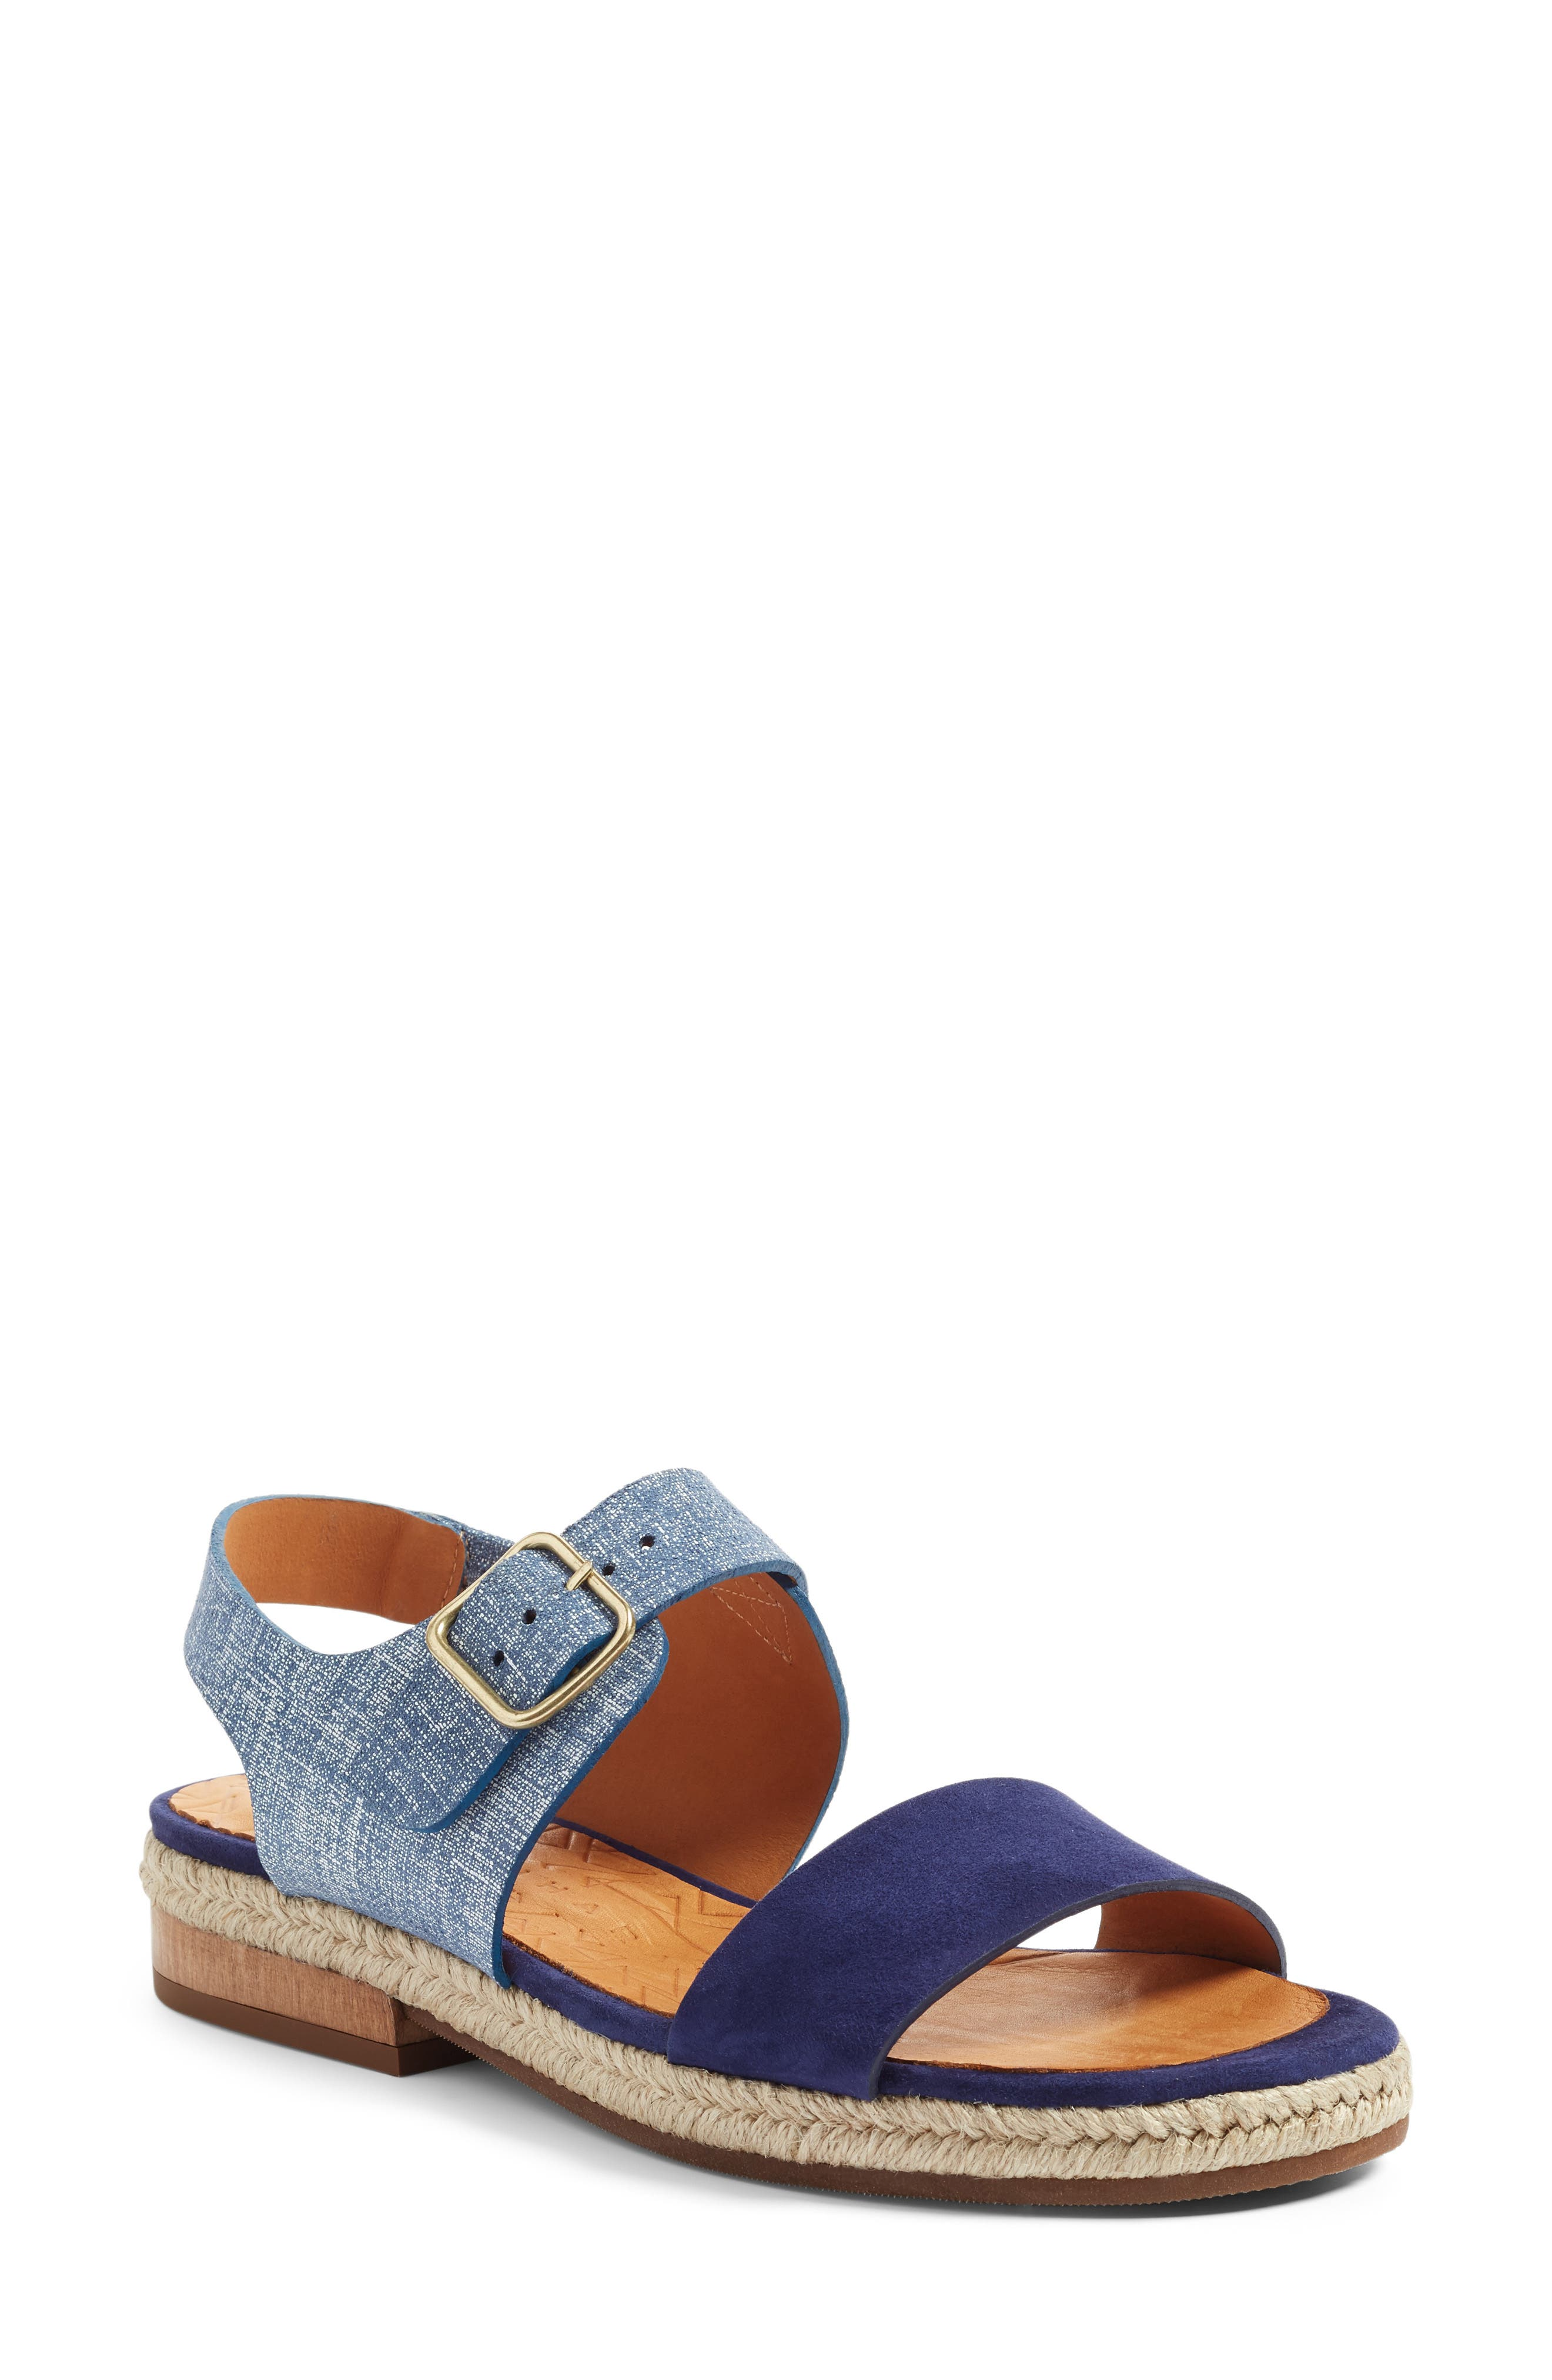 Alternate Image 1 Selected - Chie Mihara Hello Espadrille Sandal (Women)